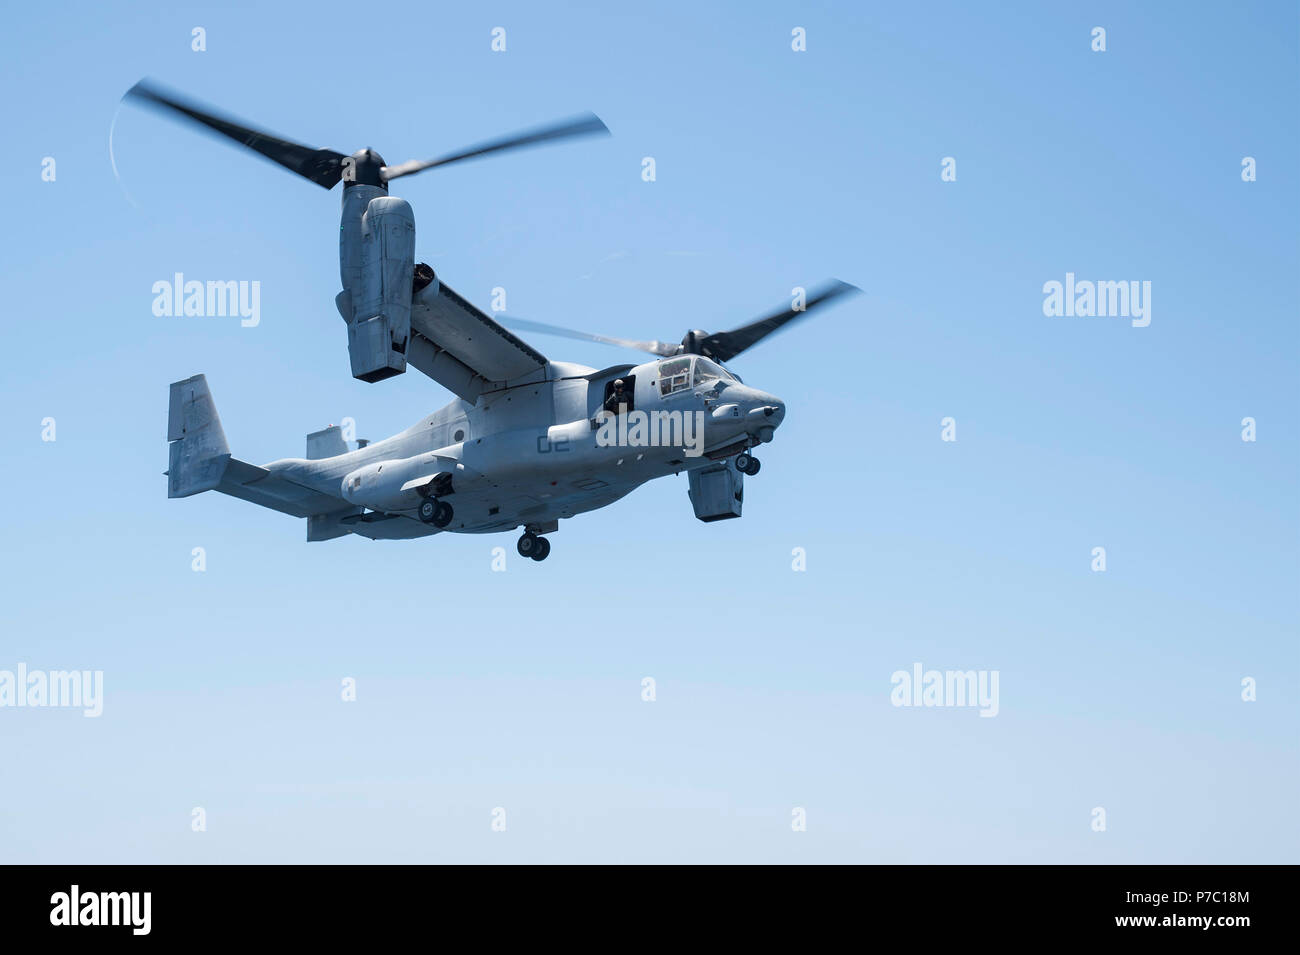 """180703-N-RD713-175 PACIFIC OCEAN,  (July 3, 2018) An MV-22B Osprey, assigned to the """"Red Lions"""" of Marine Medium Tiltrotor Squadron (VMM) 363, lands on flight deck of the amphibious assault ship USS Bonhomme Richard (LHD 6) during the squadron embarkation. Bonhomme Richard is currently underway in the U.S. 3rd Fleet area of operations.  (U.S. Navy photo by Mass Communication Specialist 3rd Class Zachary DiPadova) Stock Photo"""